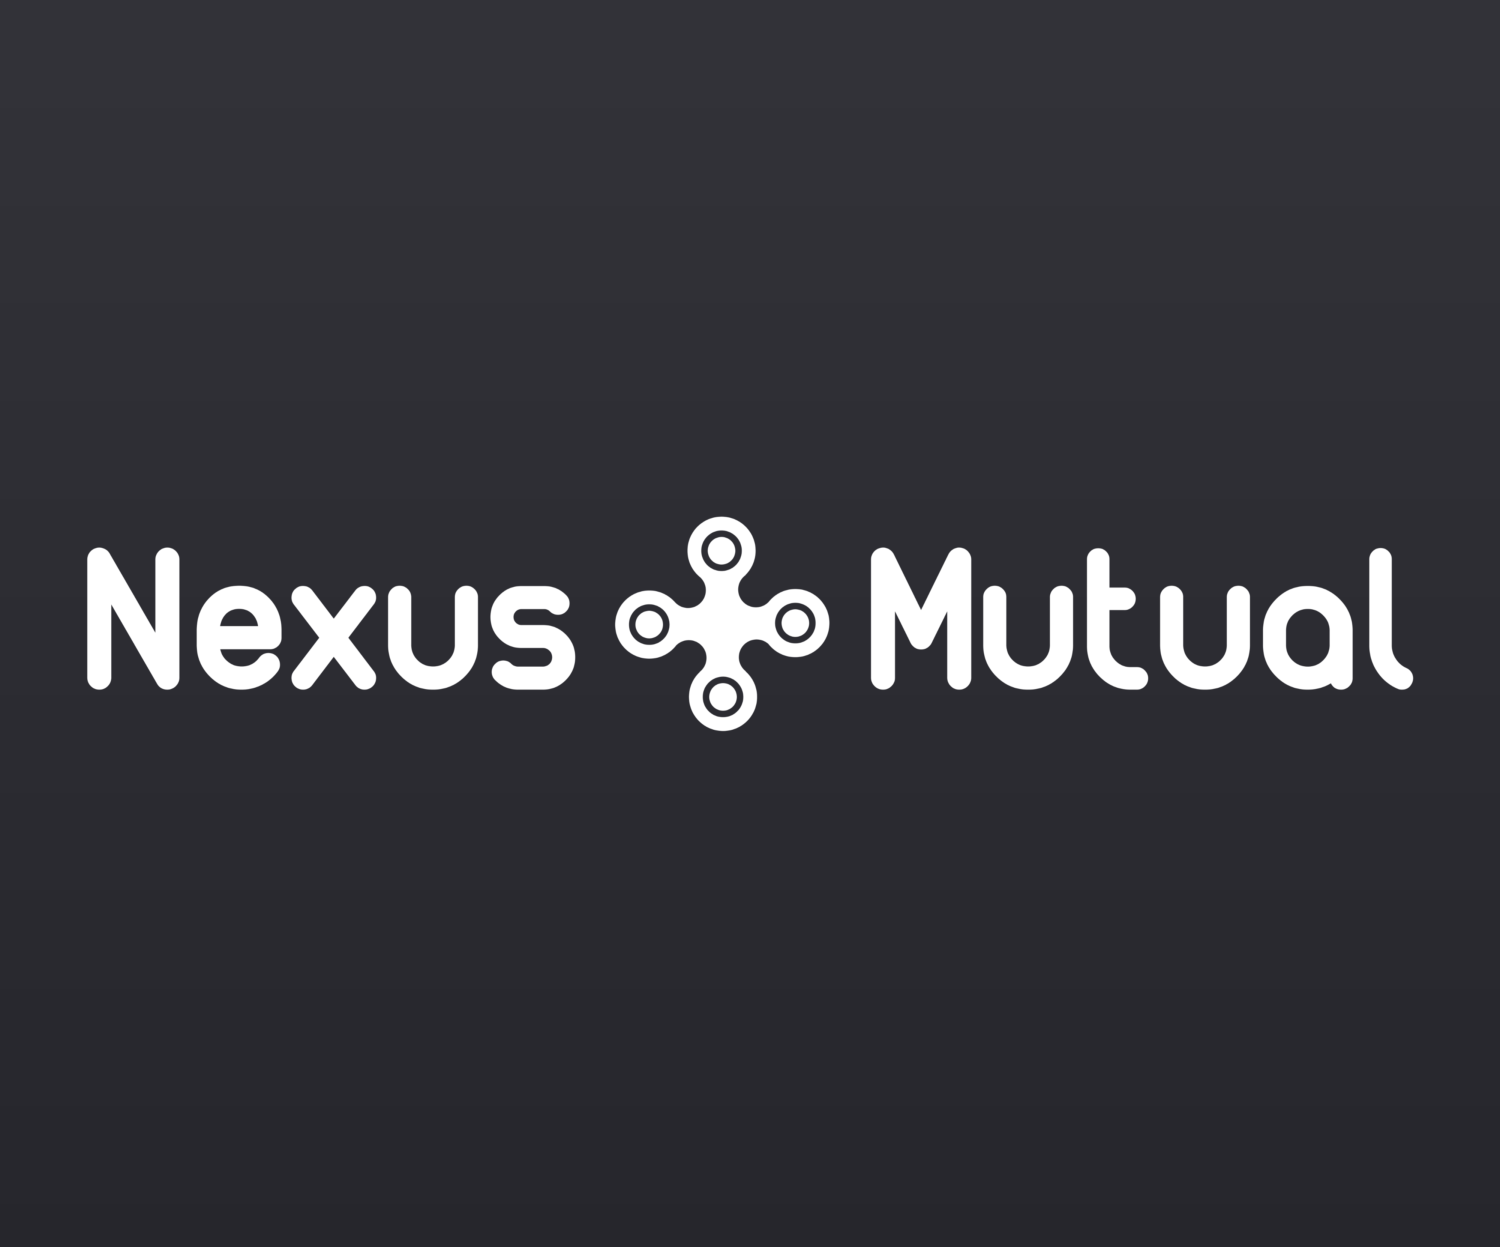 DeFi startup Nexus Mutual resolves two vulnerabilities, will pay $7,000 in bug bounties